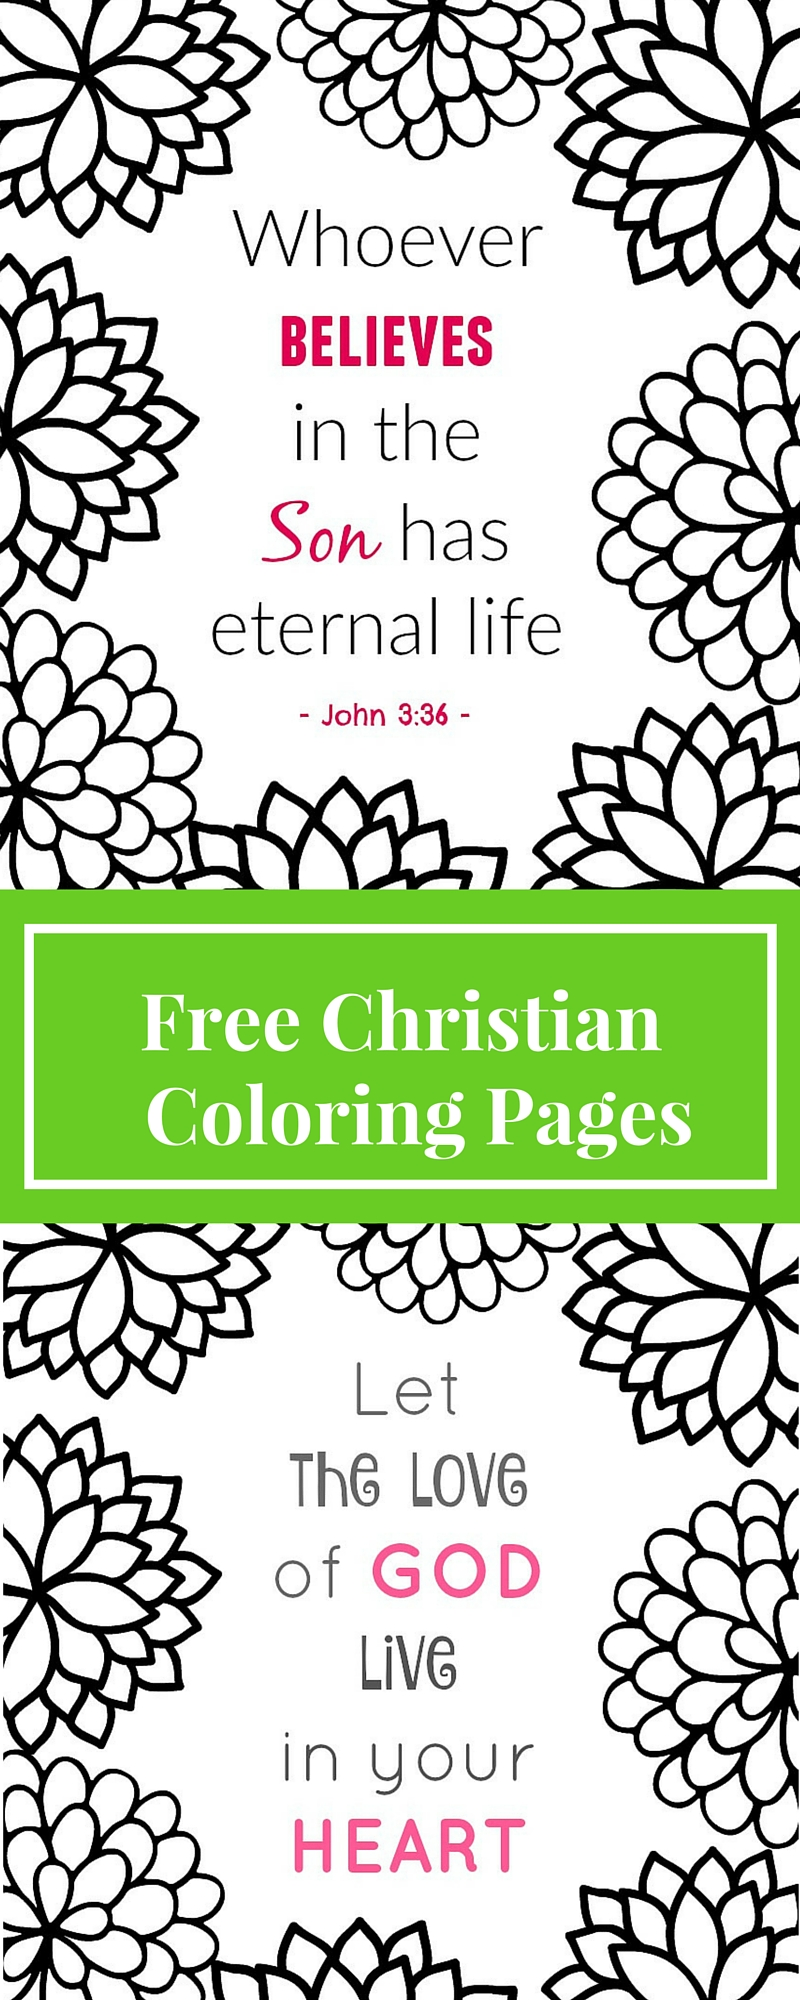 free christiian coloring pages - photo#33